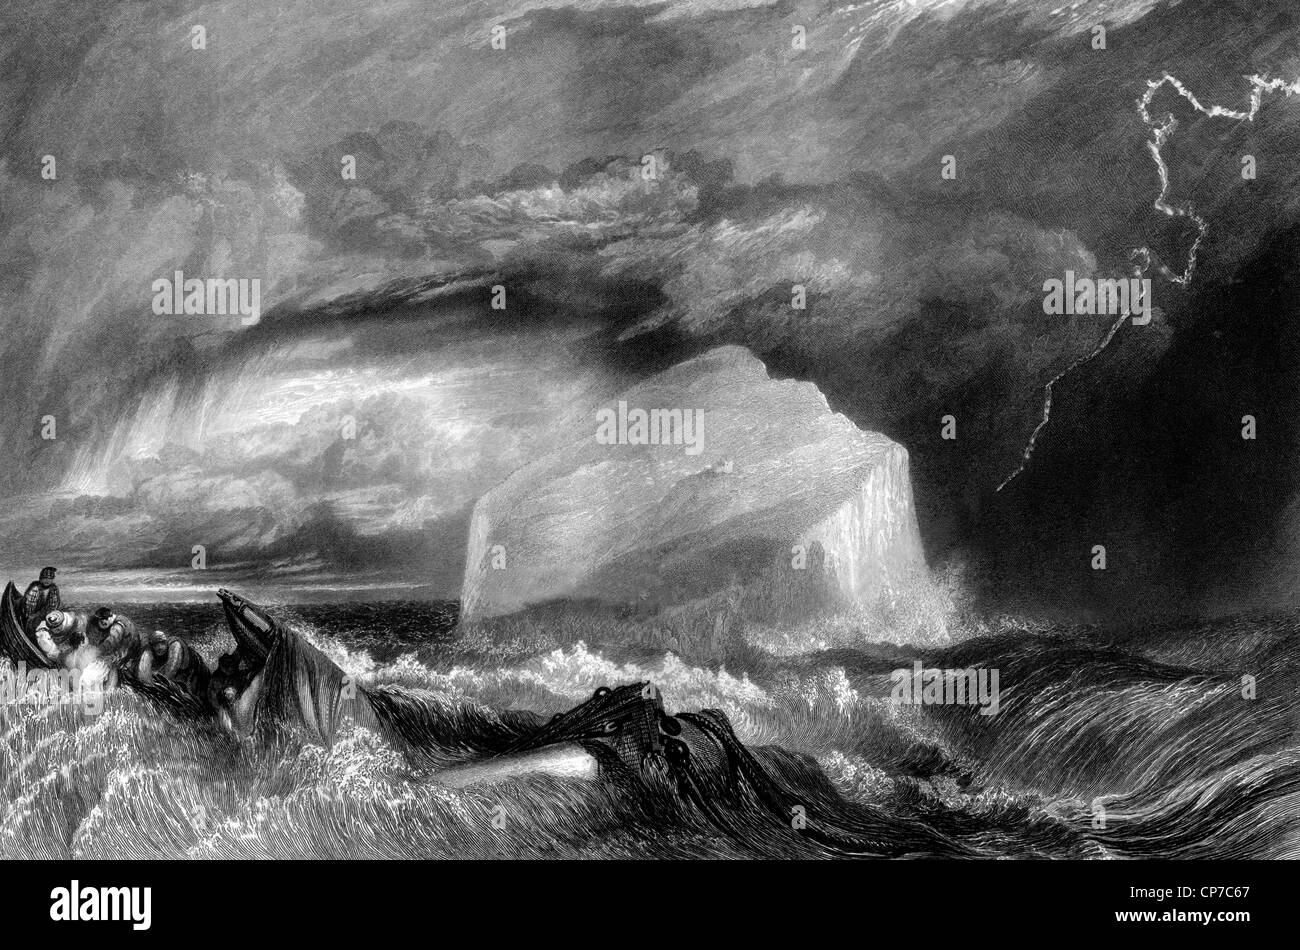 Shipwrecked sailors in stormy sea with lightning, Bass Rock island in background, Firth of Forth, Scotland. - Stock Image